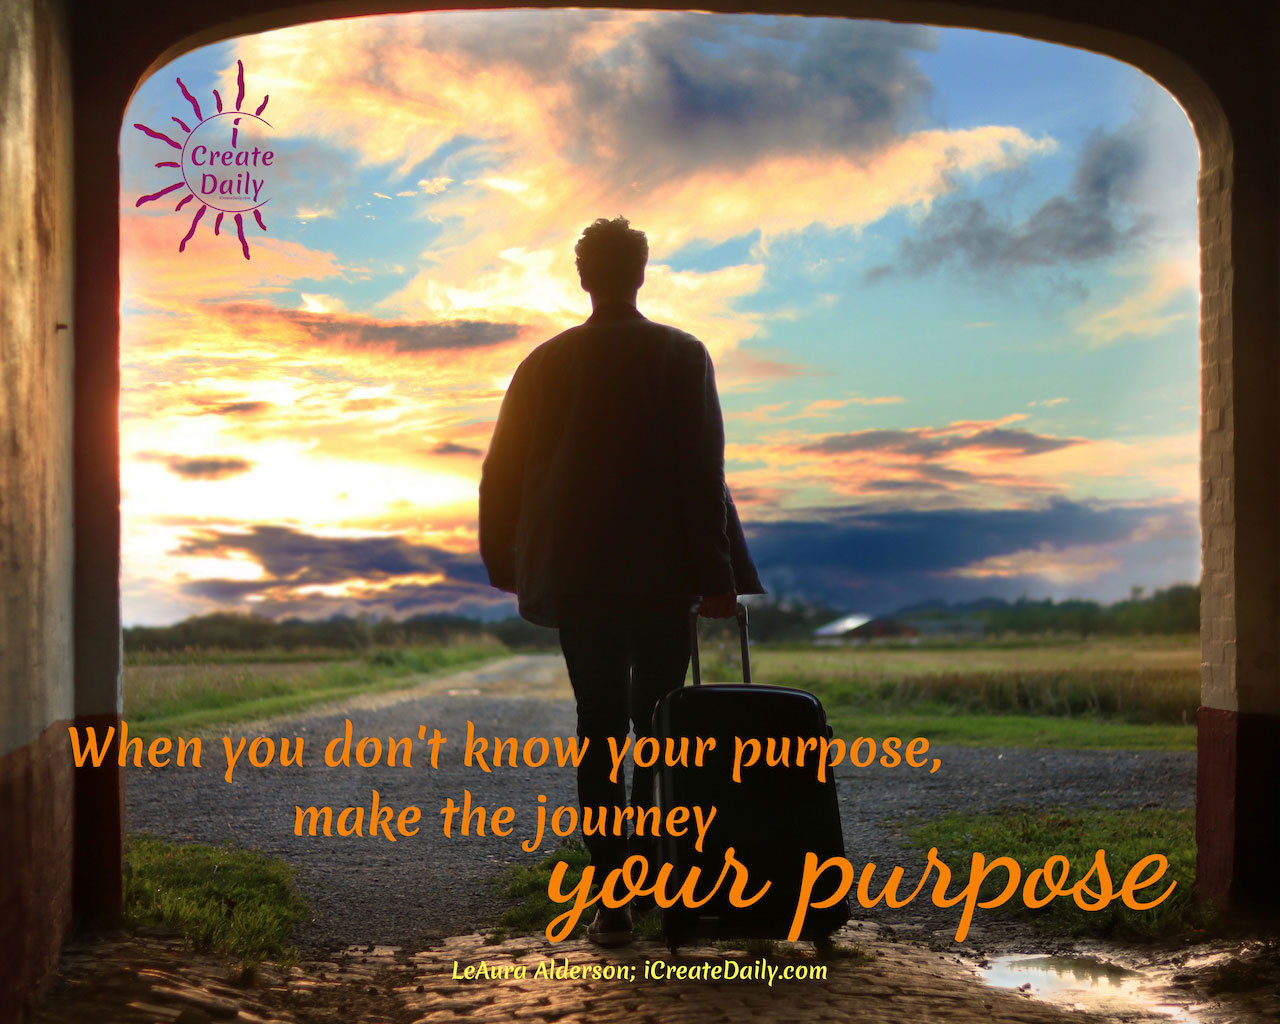 Make the Journey Your Purpose